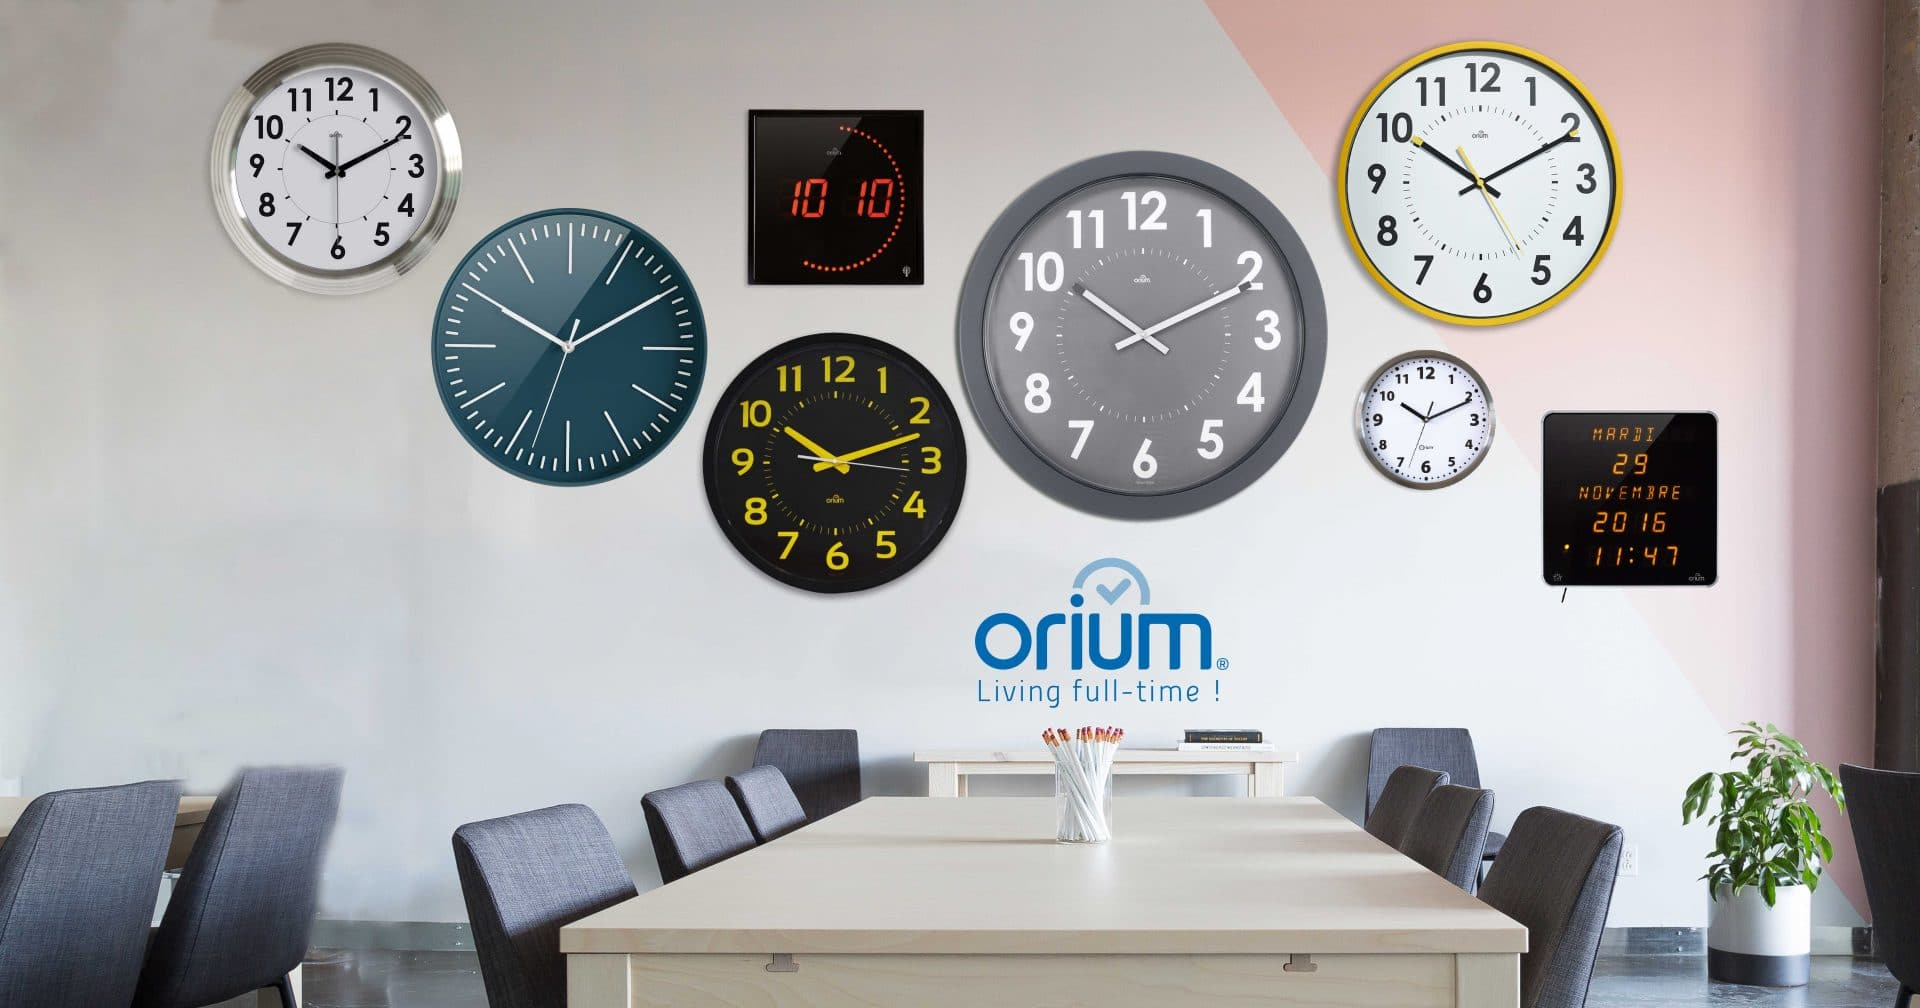 Office clocks : the ORIUM® solution !